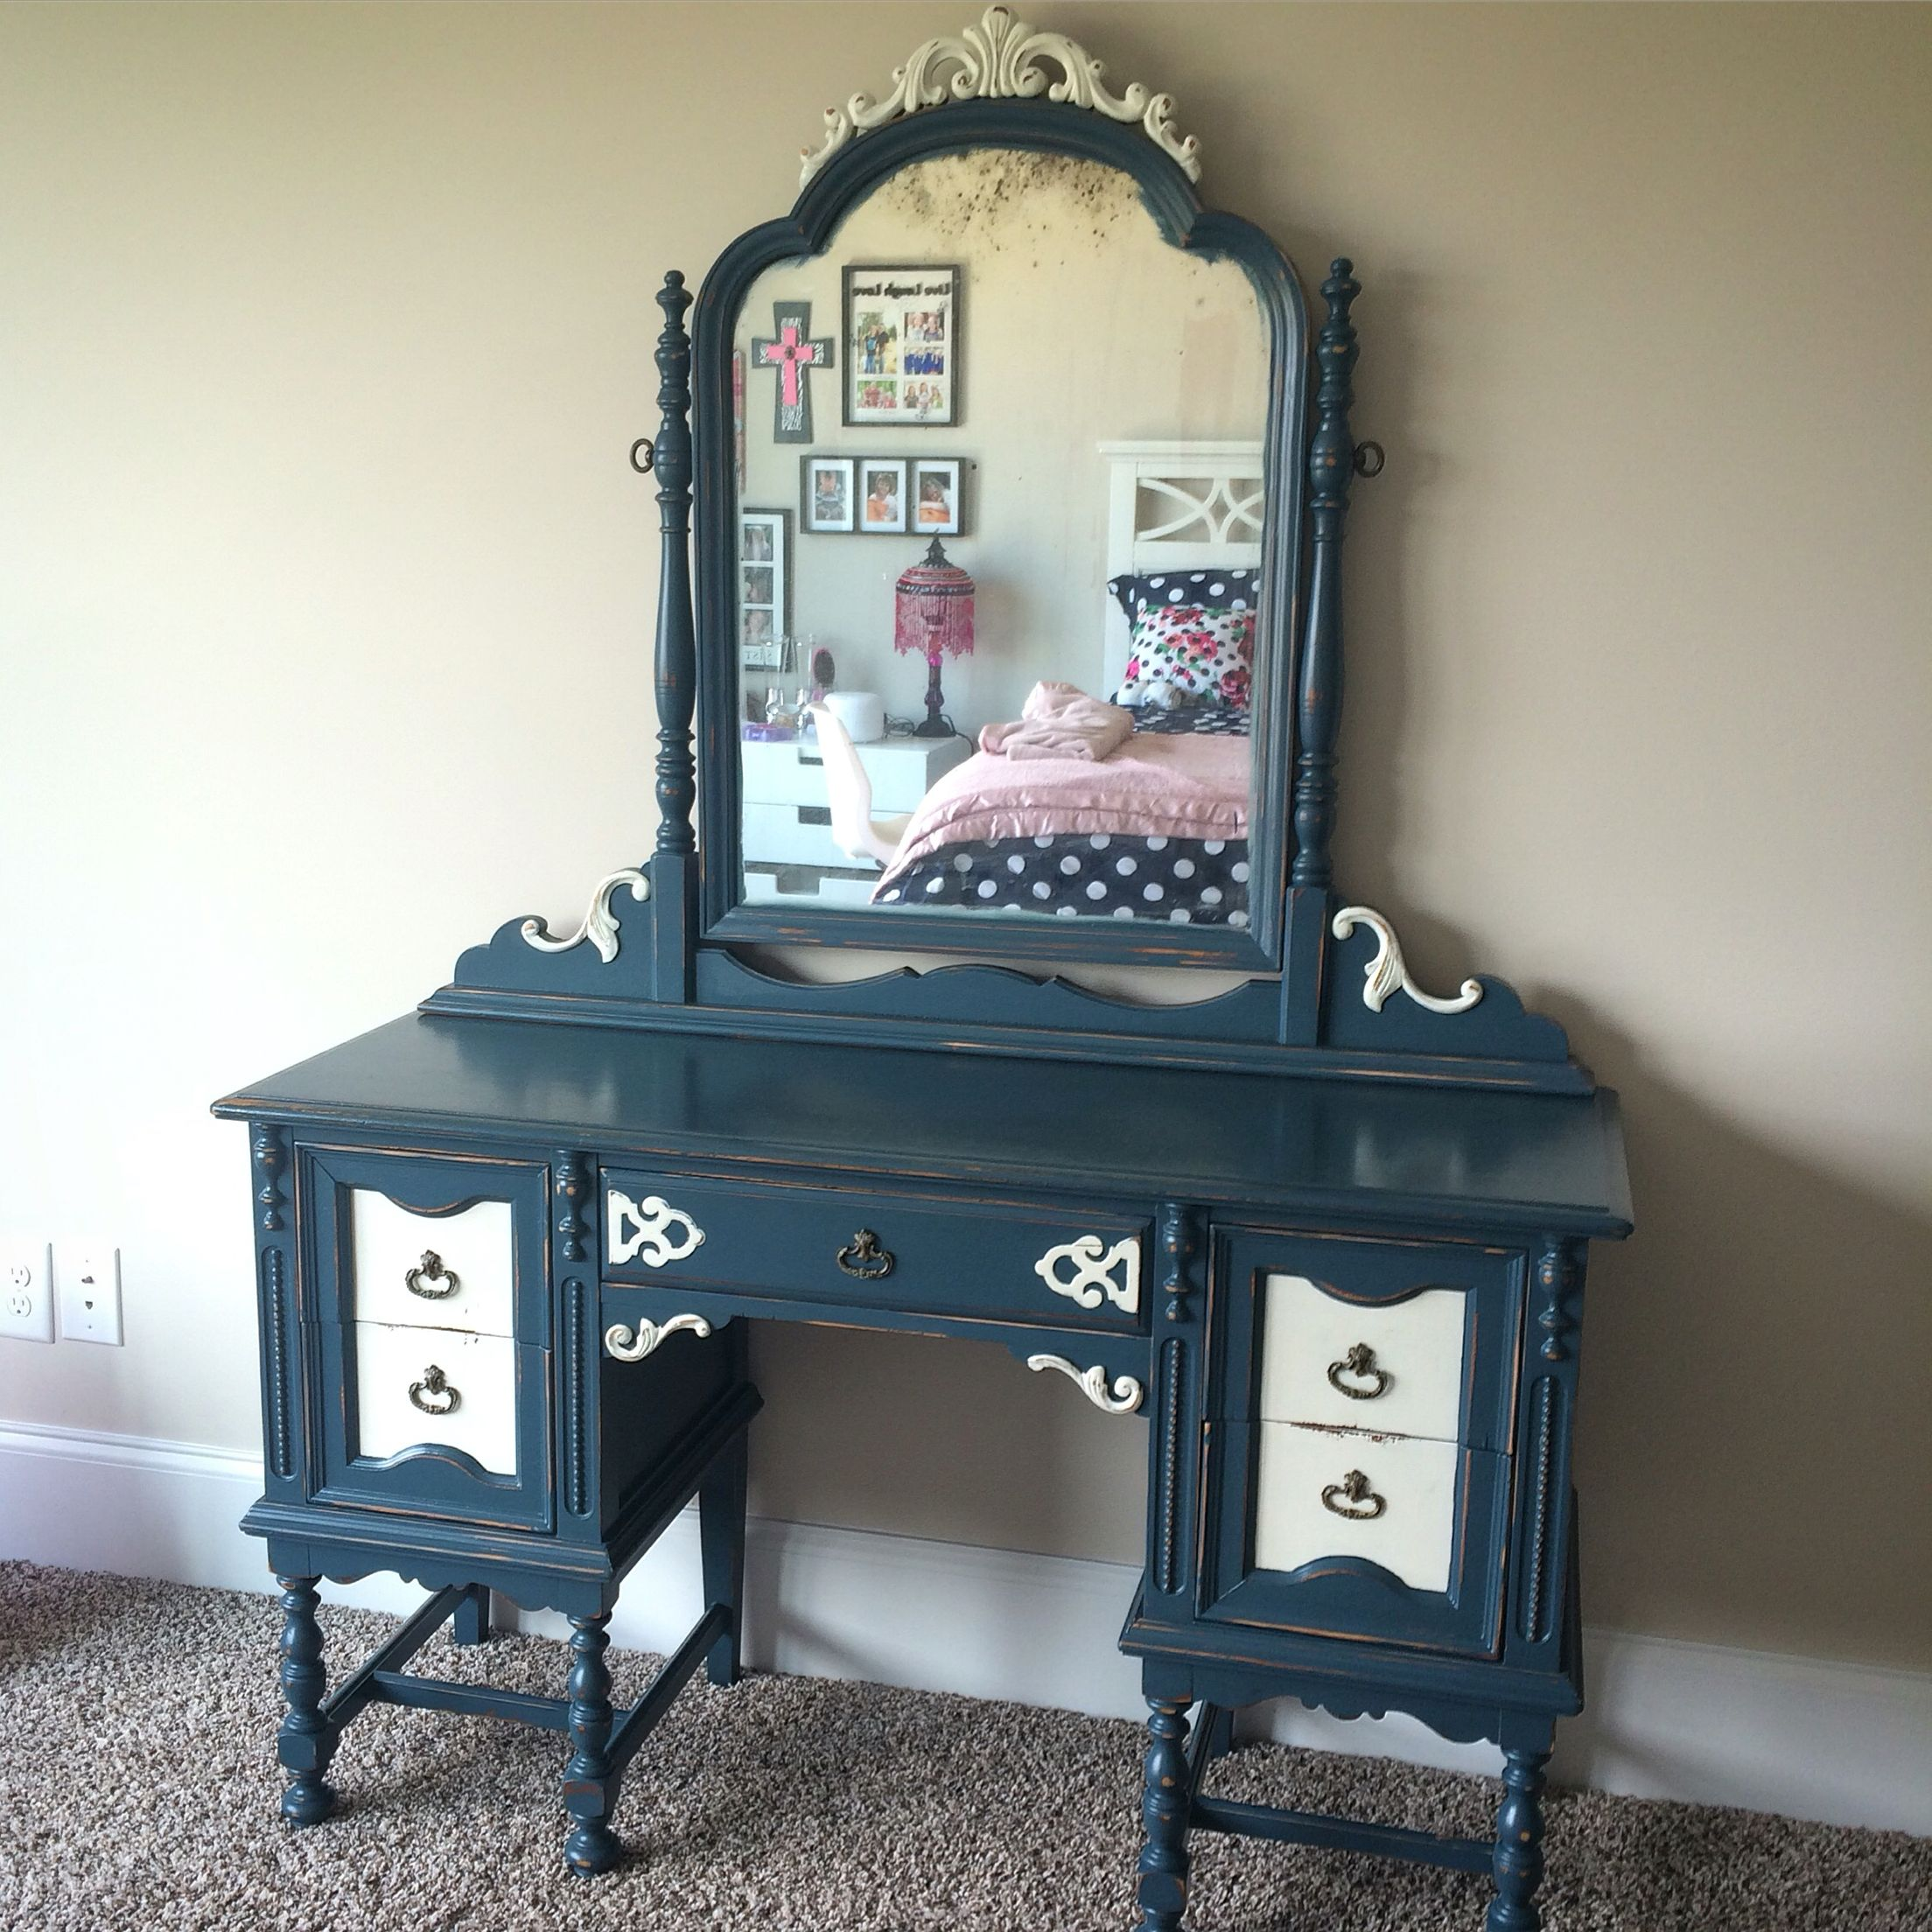 Refinished vanity with Rethunk Junk paint denim blue and tried with cotton. #ourjunkyourtrunk #rethunkjunkpaint #breakthechalkhabit